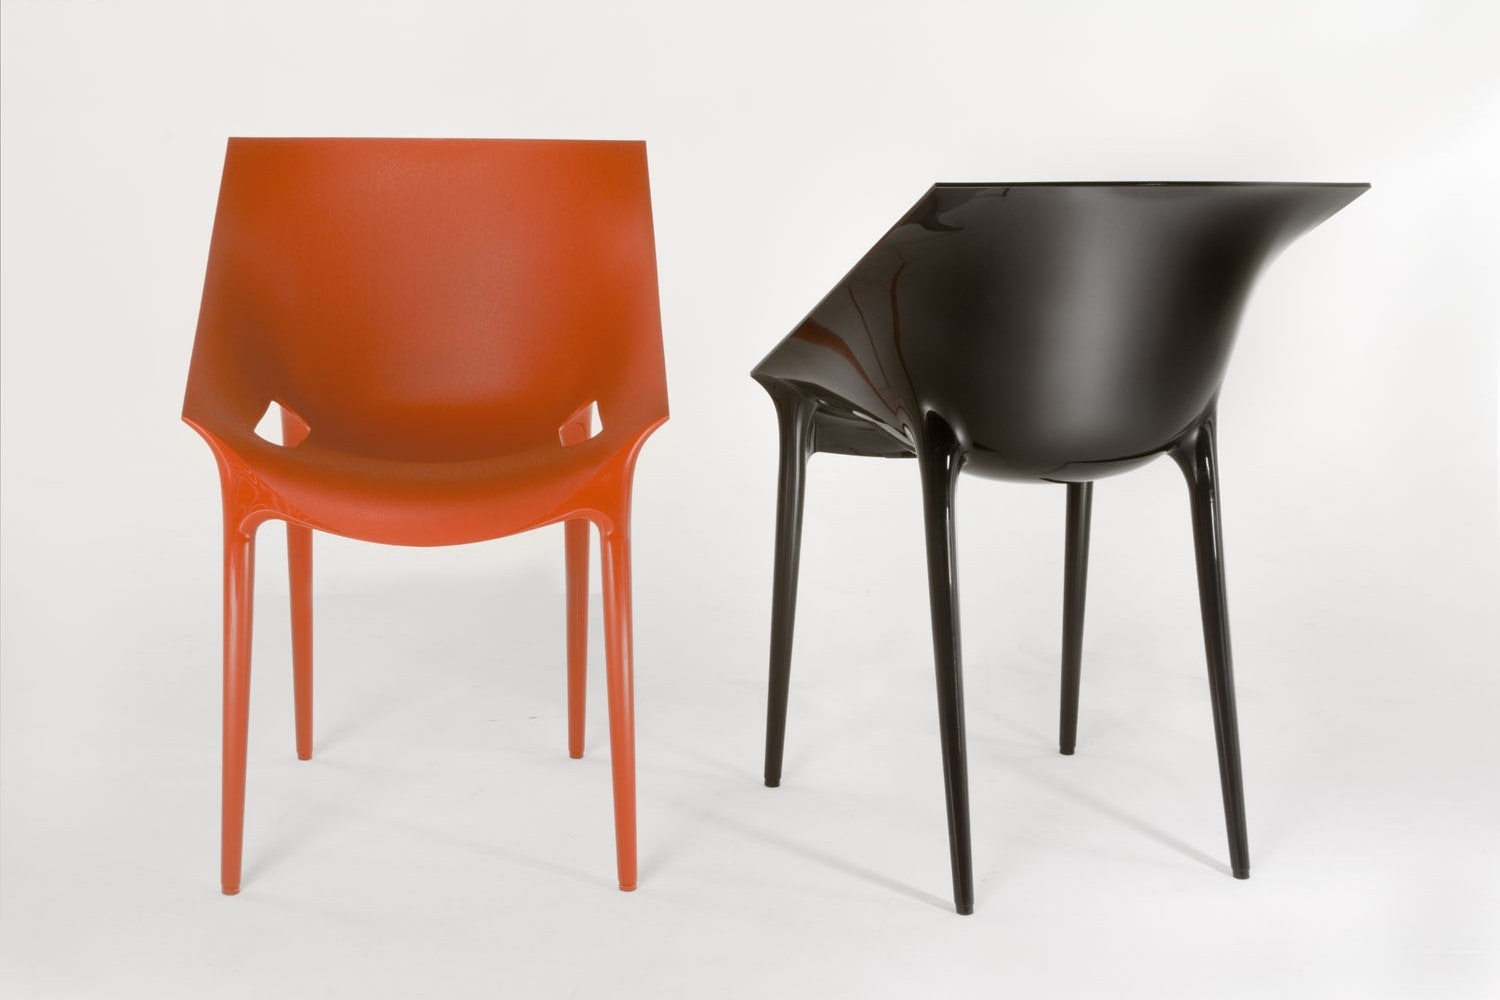 Dr. YES Chair by Philippe Starck with Eugeni Quitllet for Kartell